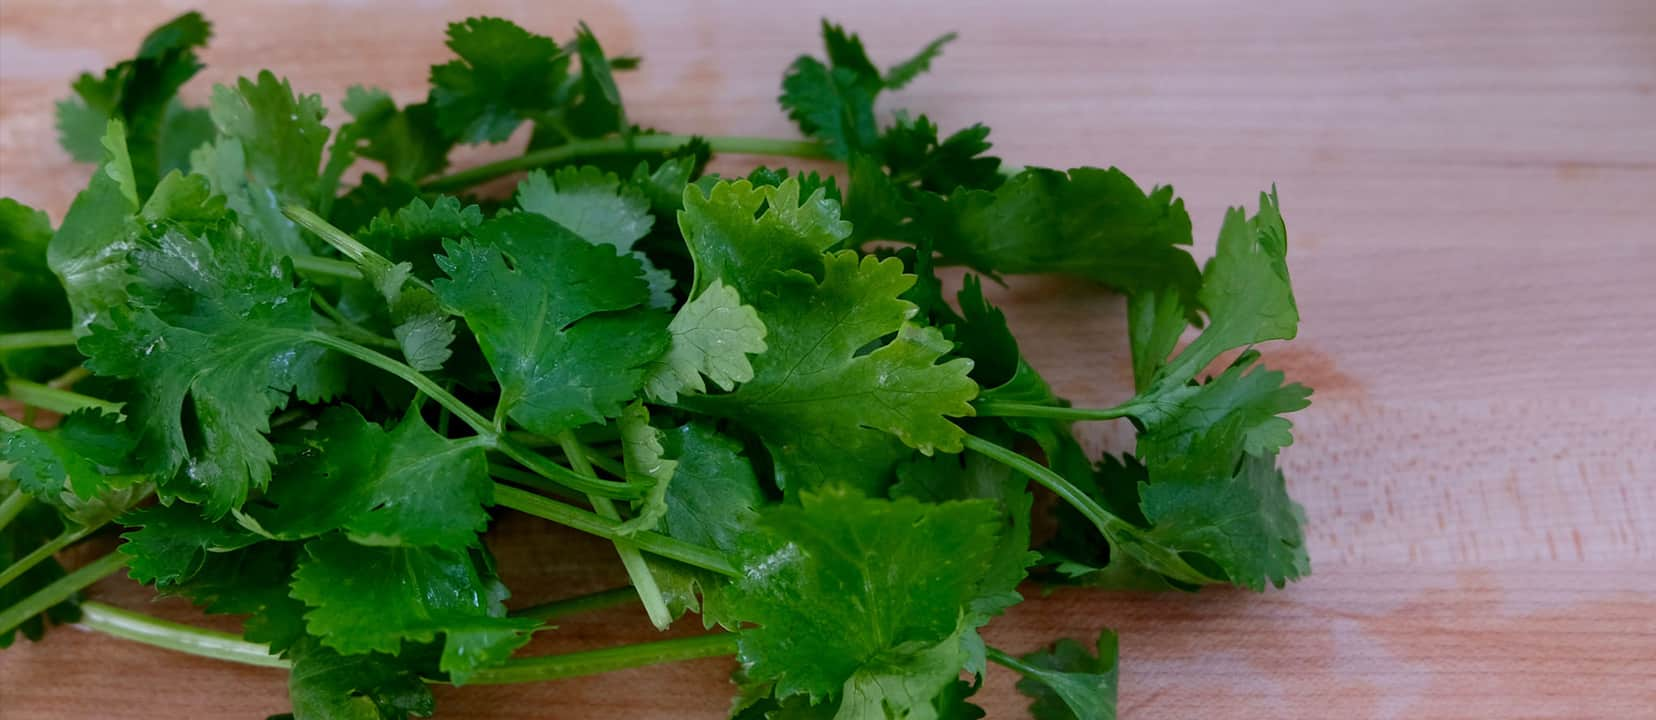 Why Some Like Cilantro and Others Hate It